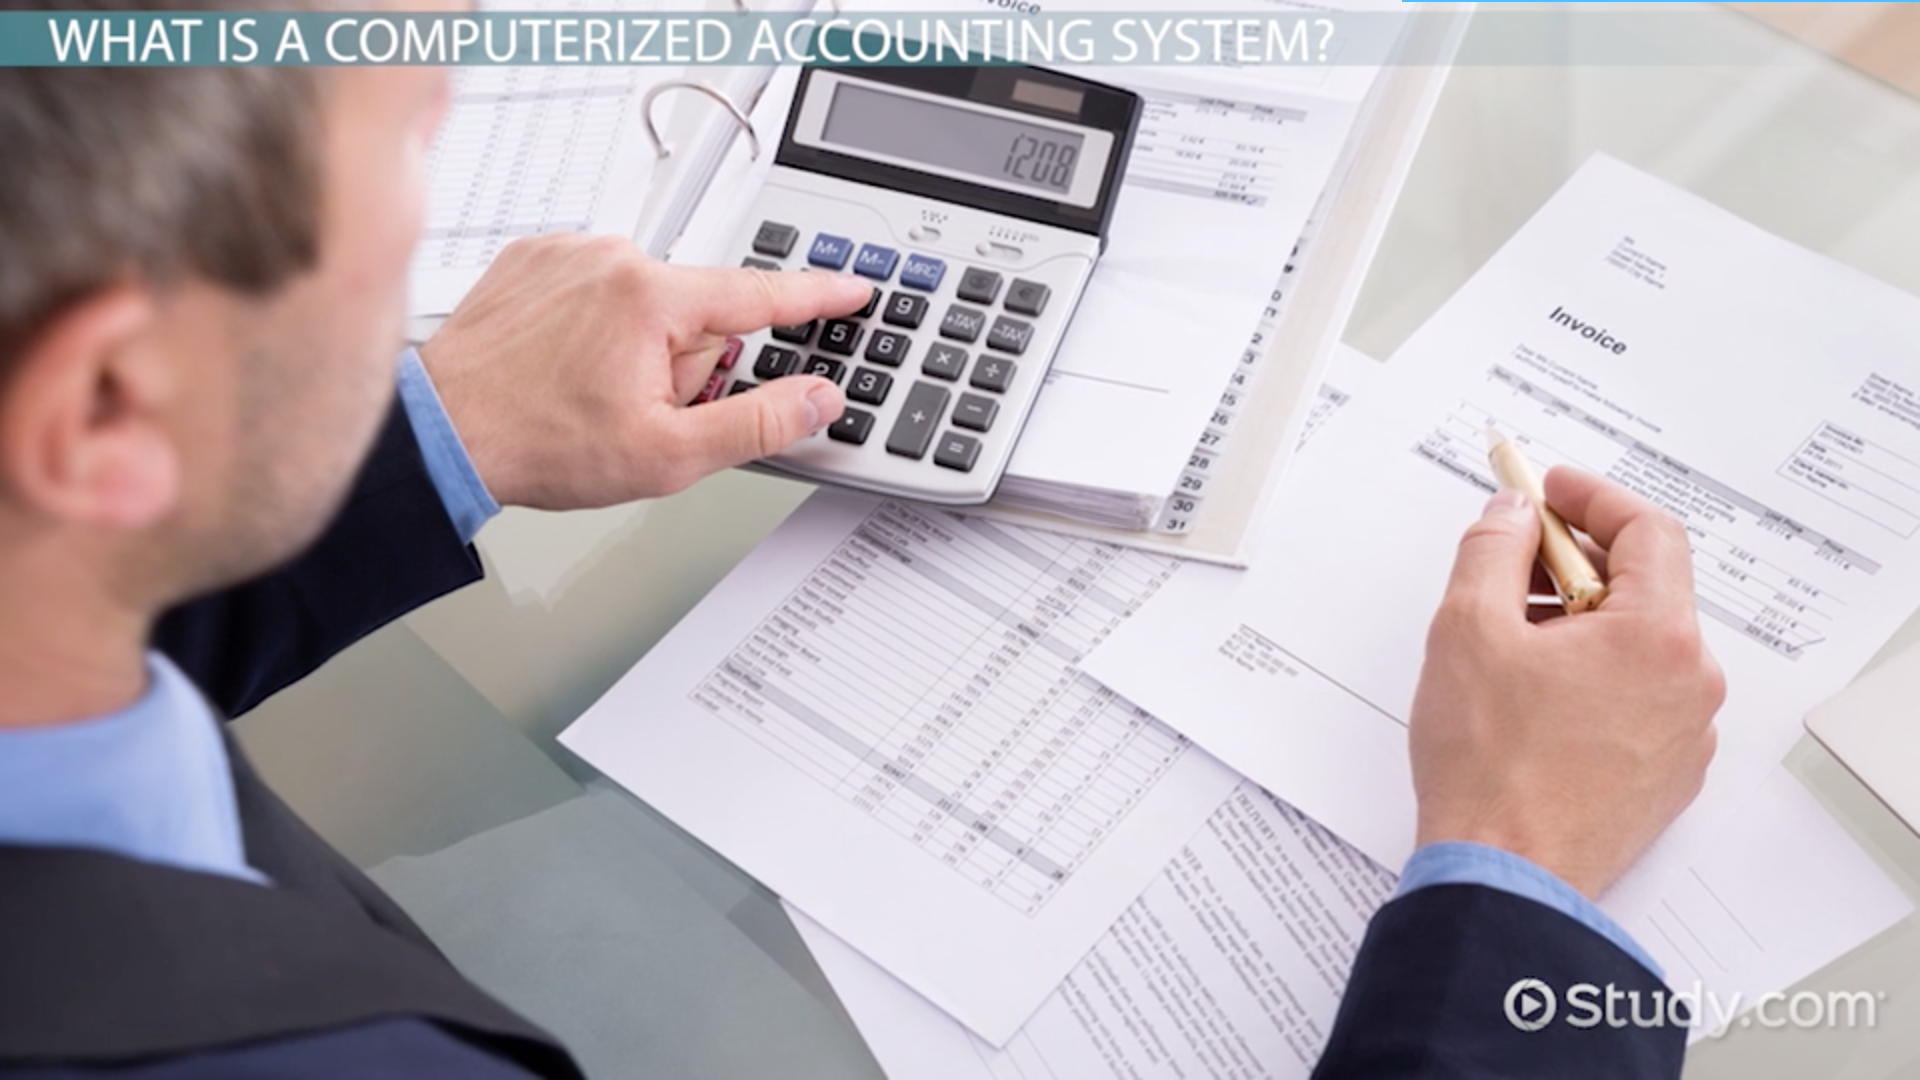 Sequential stages of an accounting information system